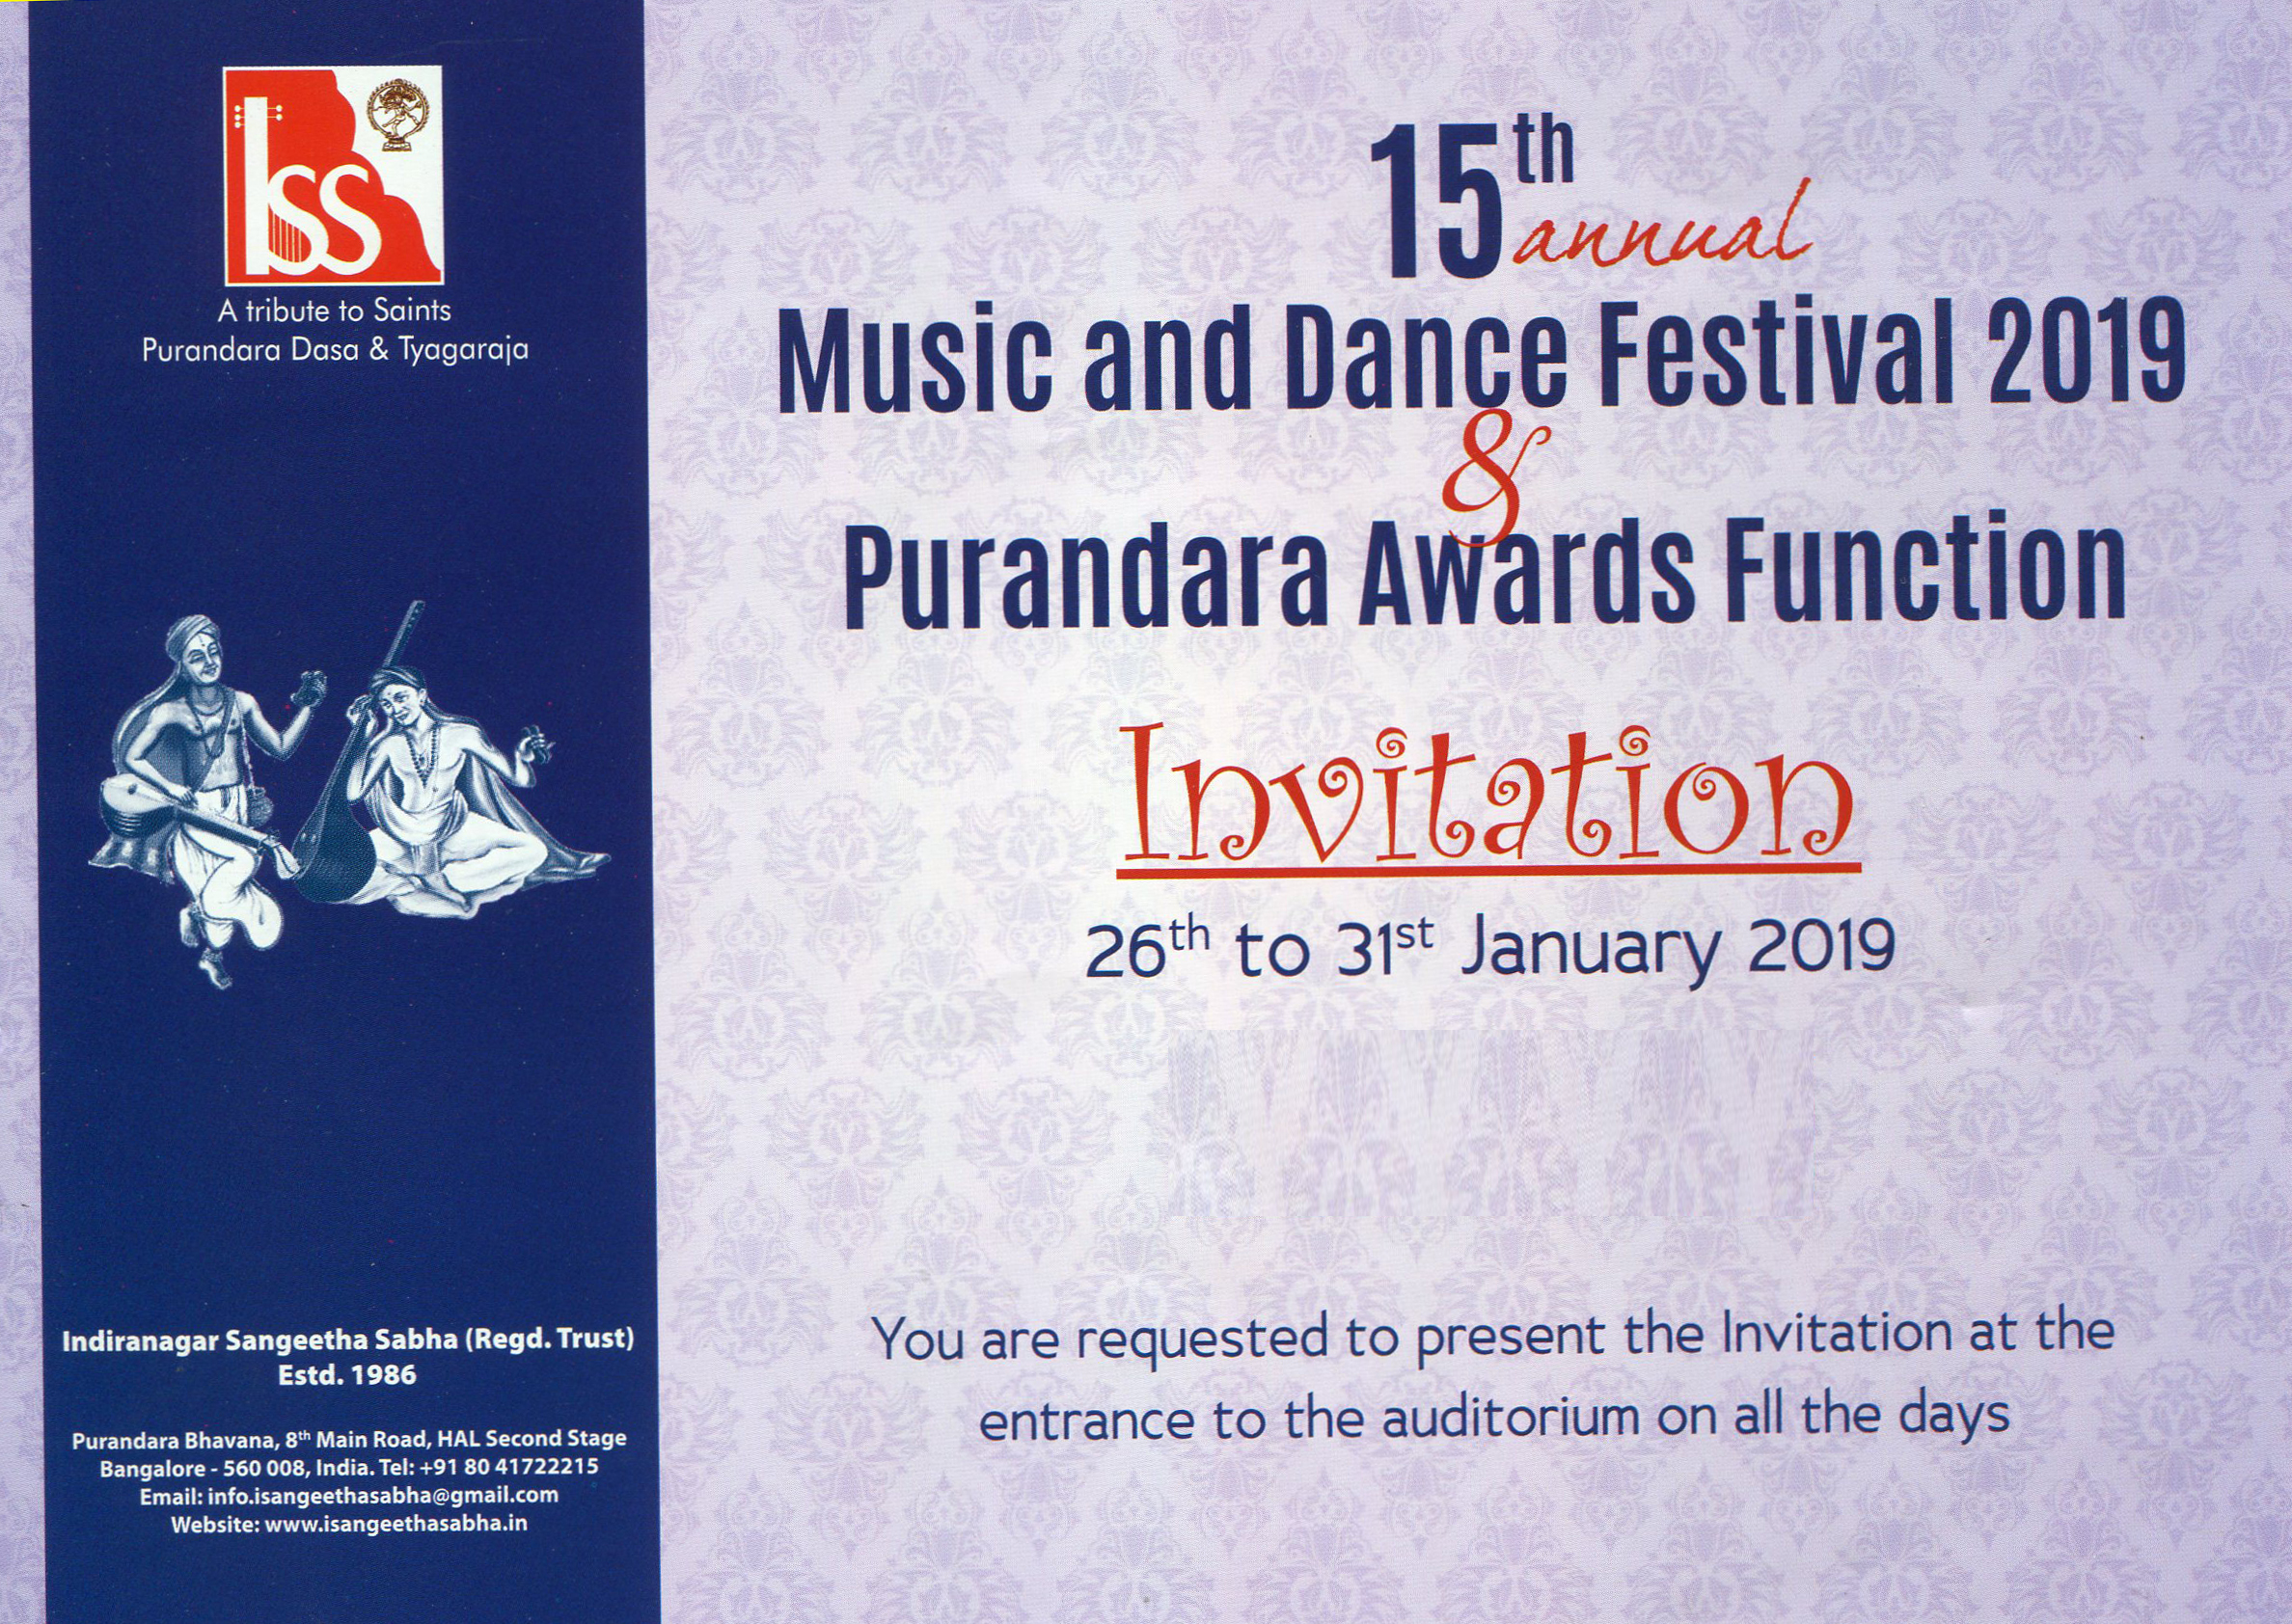 15th Annual Music and Dance Festival 2019